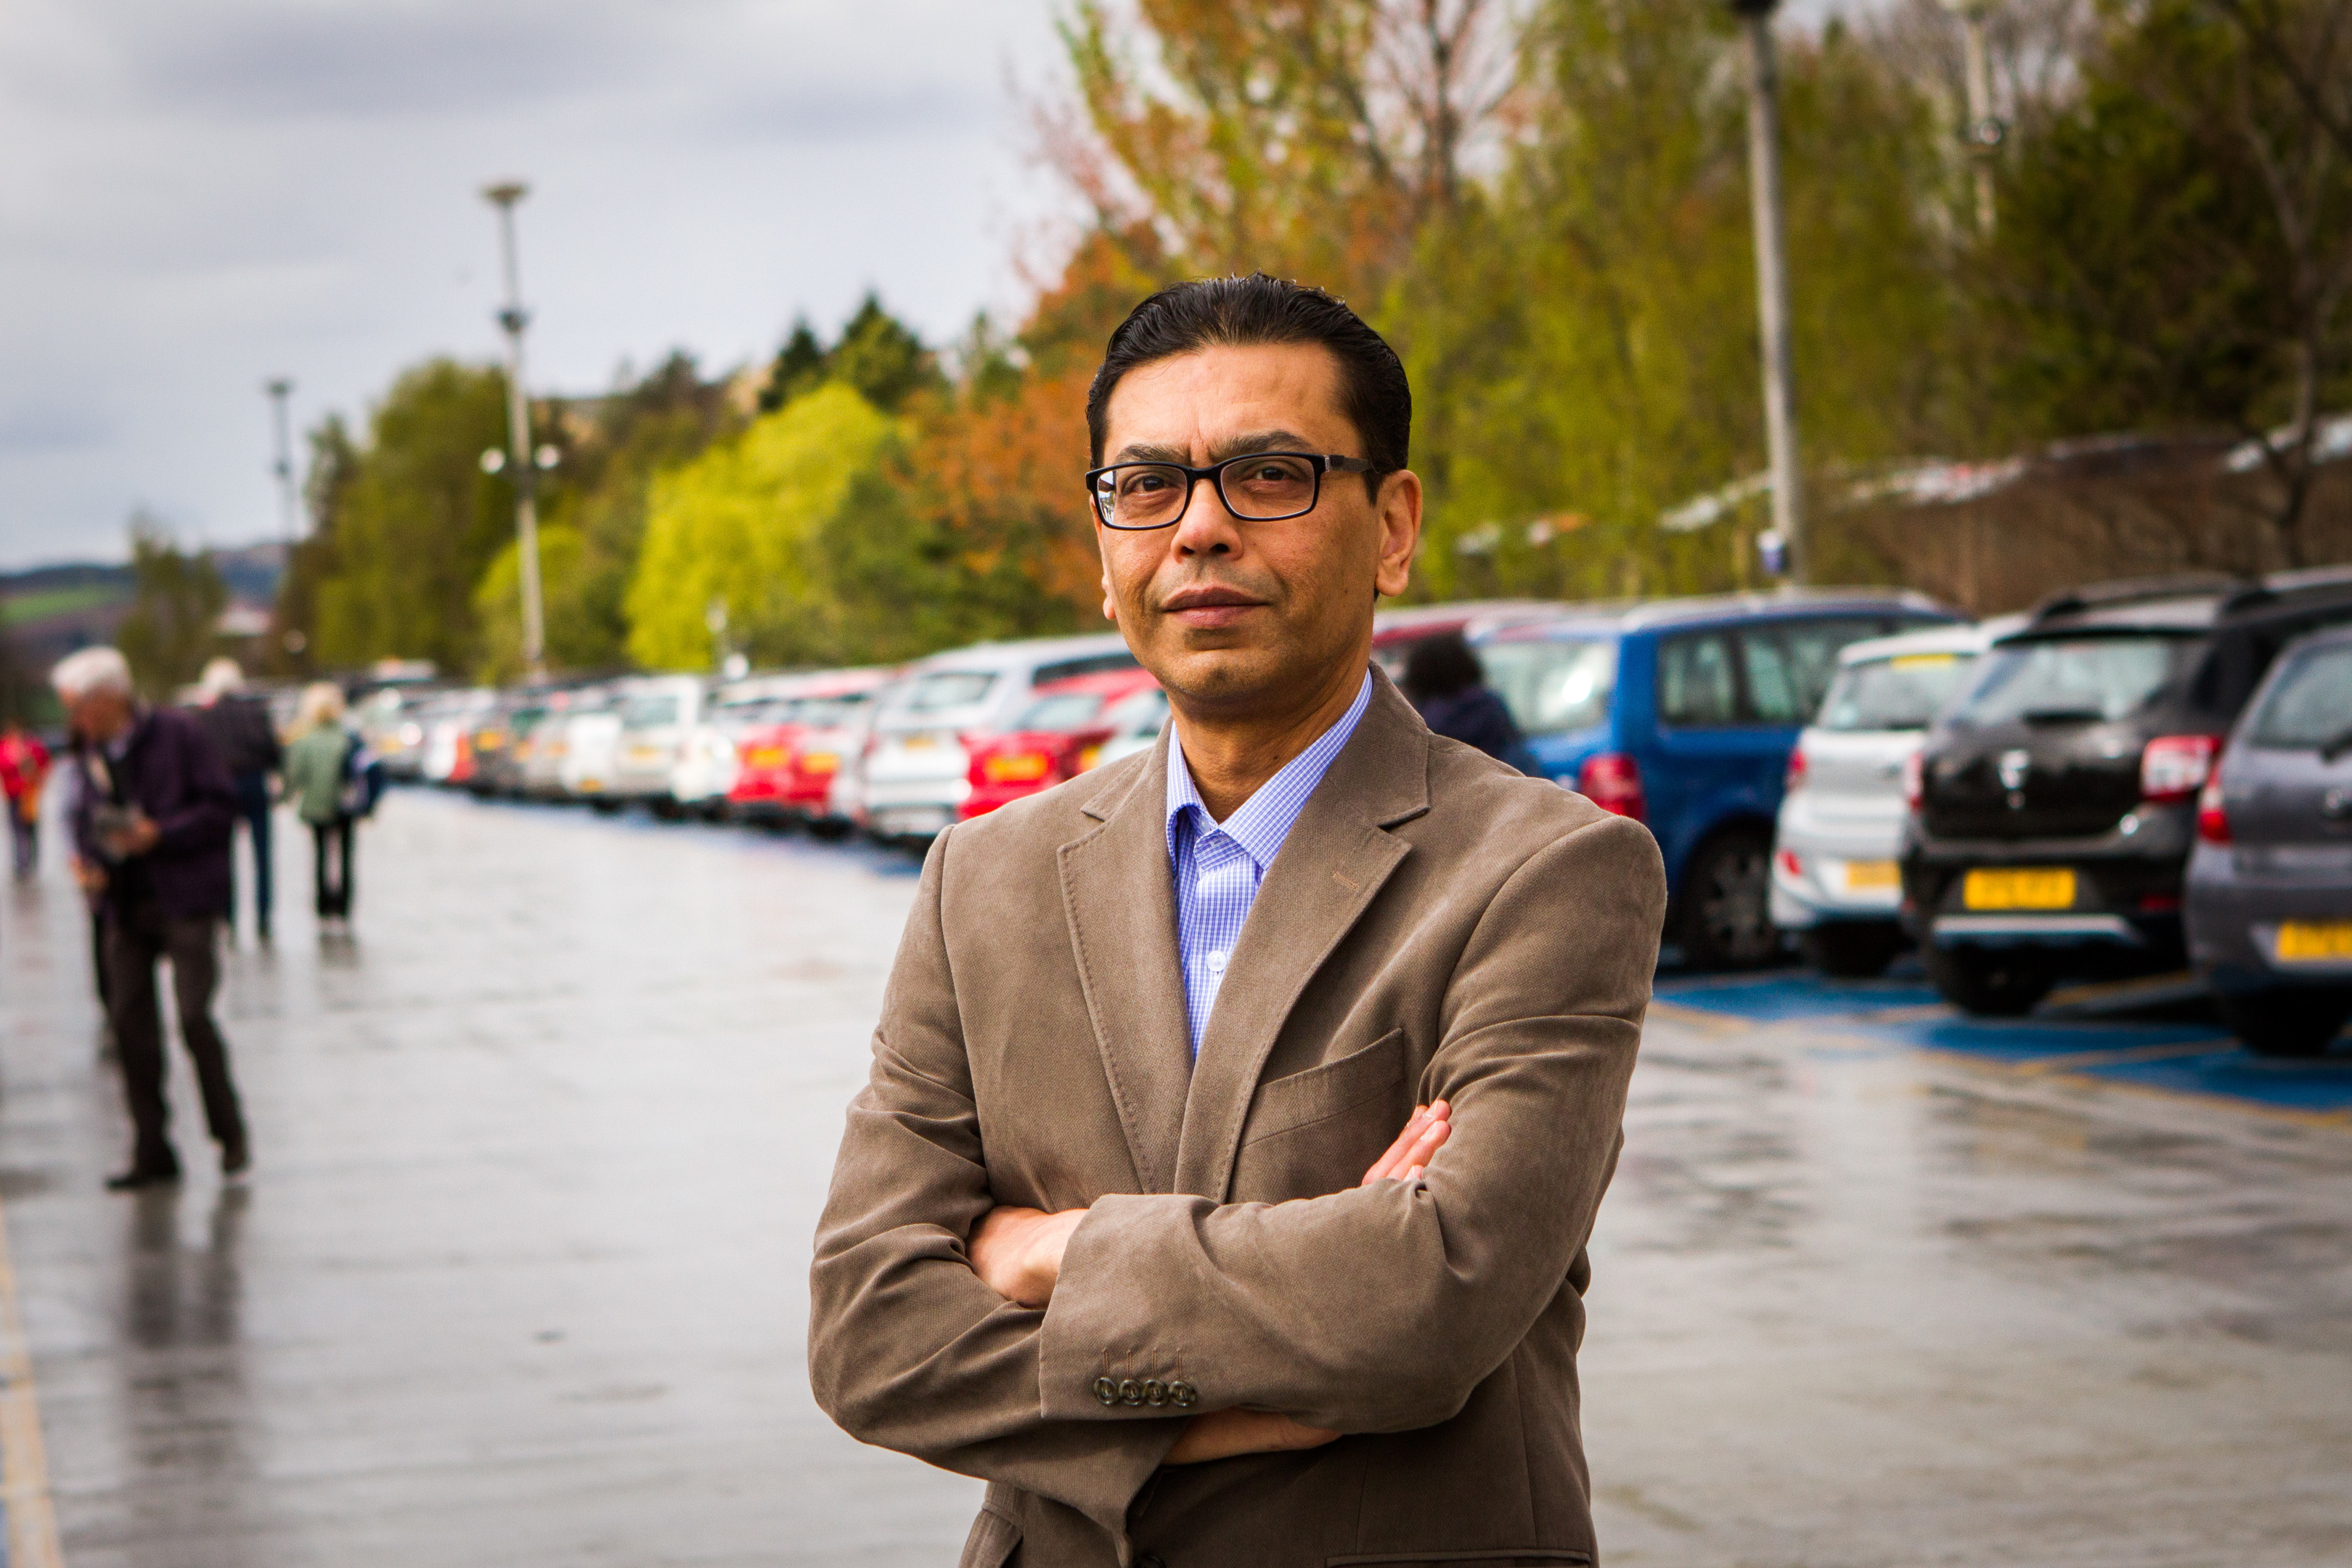 Dr Das may crowdfund to pay for his fine.